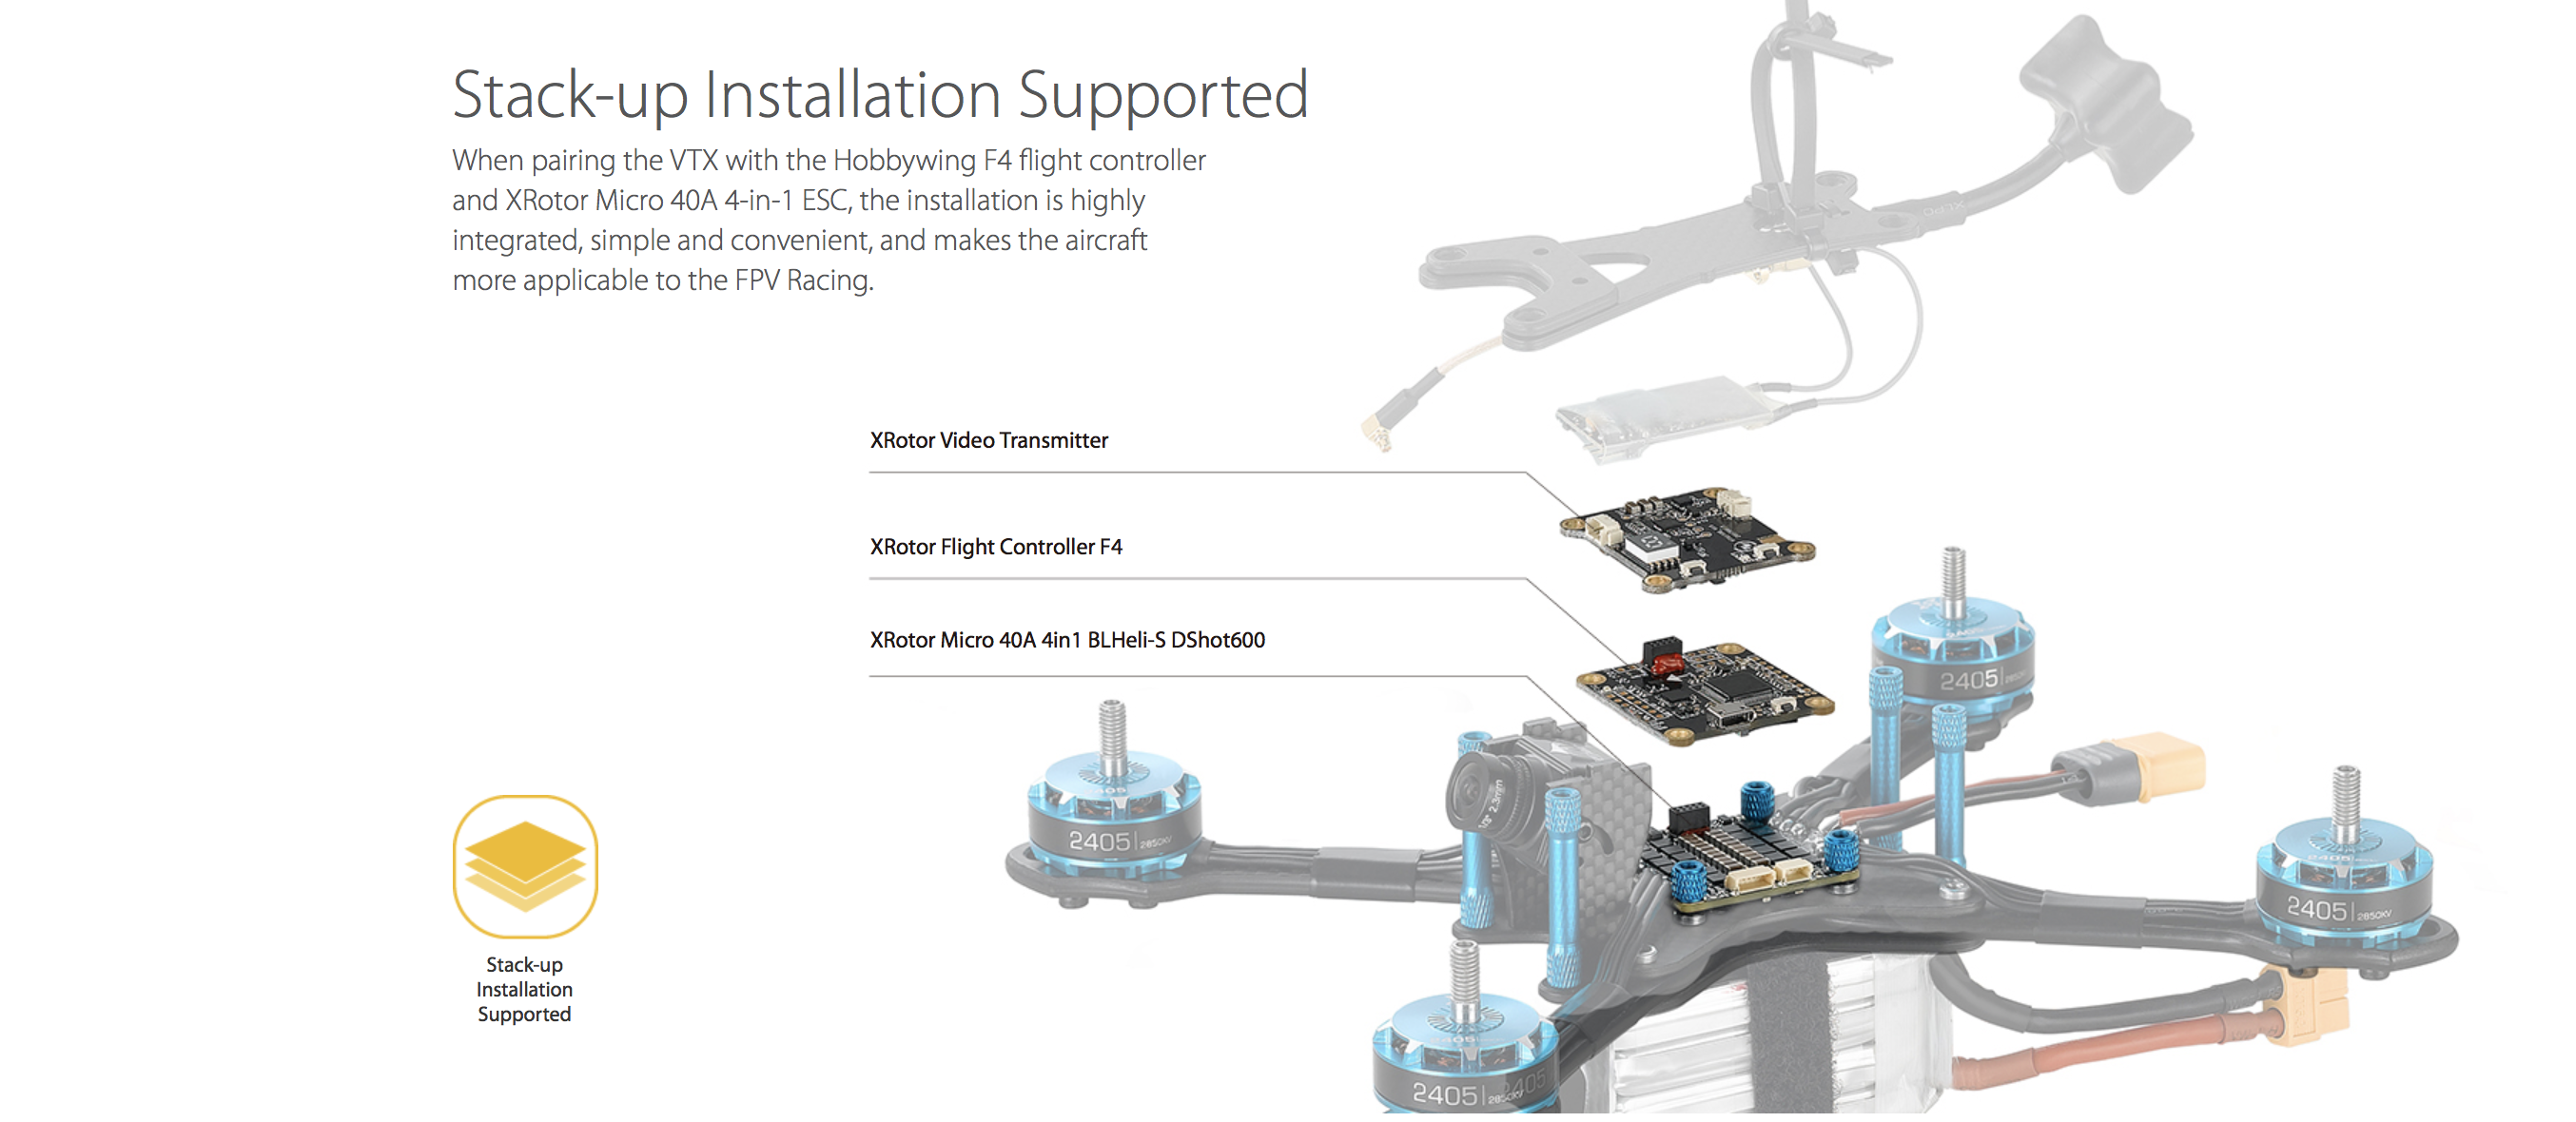 Stack-up Installation Supported: When pairing the VTX with the Hobbywing F4 flight controller and XRotor Micro 40A 4-in-1 ESC, the installation is highly integrated, simple and convenient, and makes the aircraft more applicable to the FPV Racing.